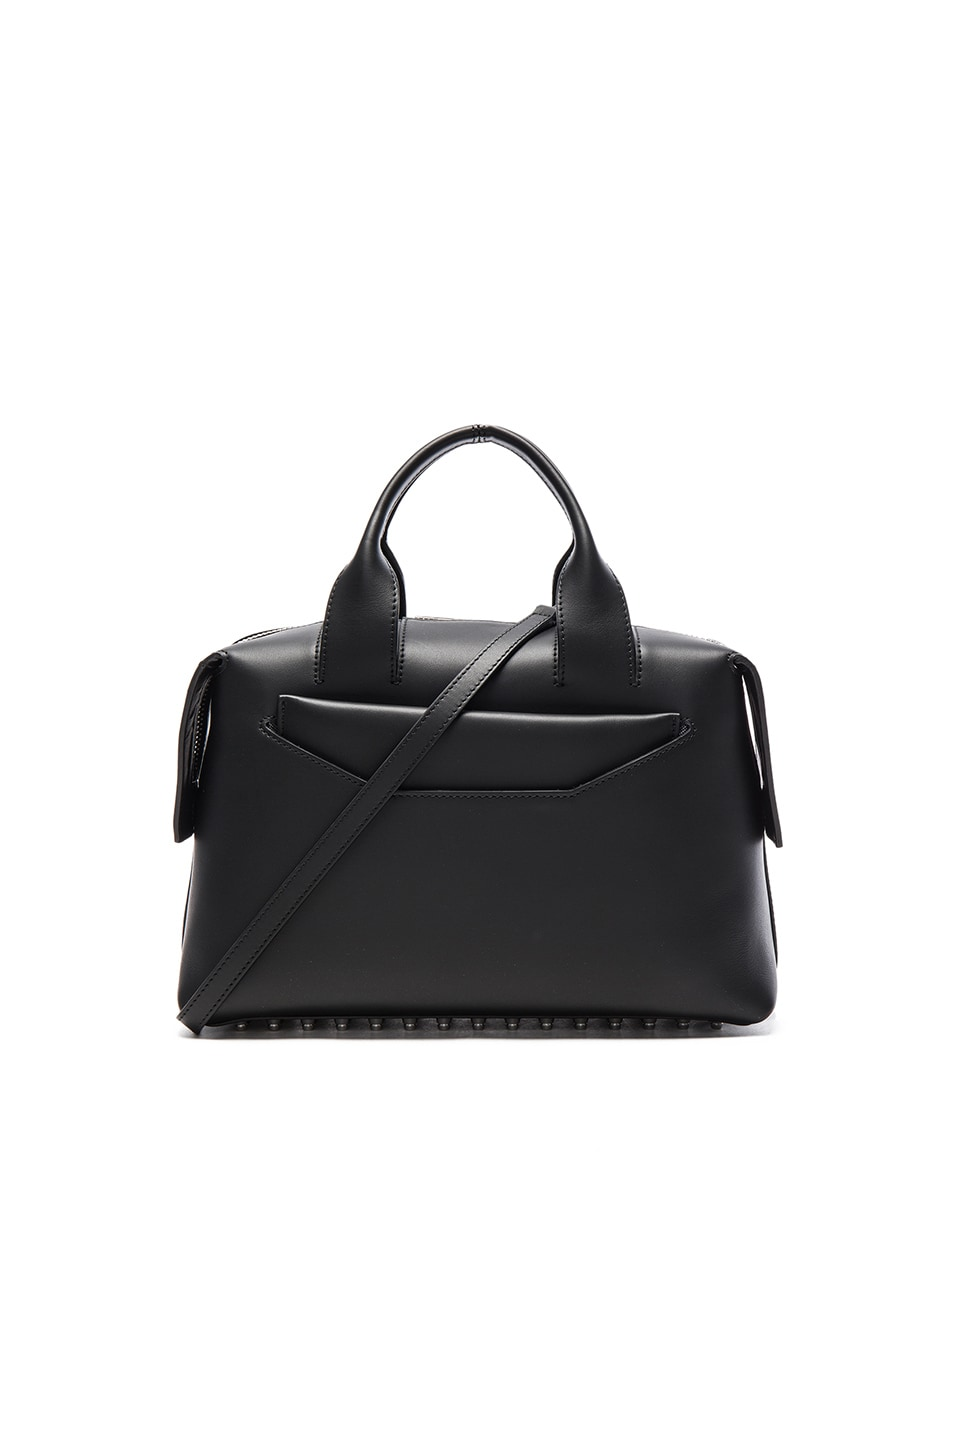 Image 1 of Alexander Wang Rogue Satchel in Black